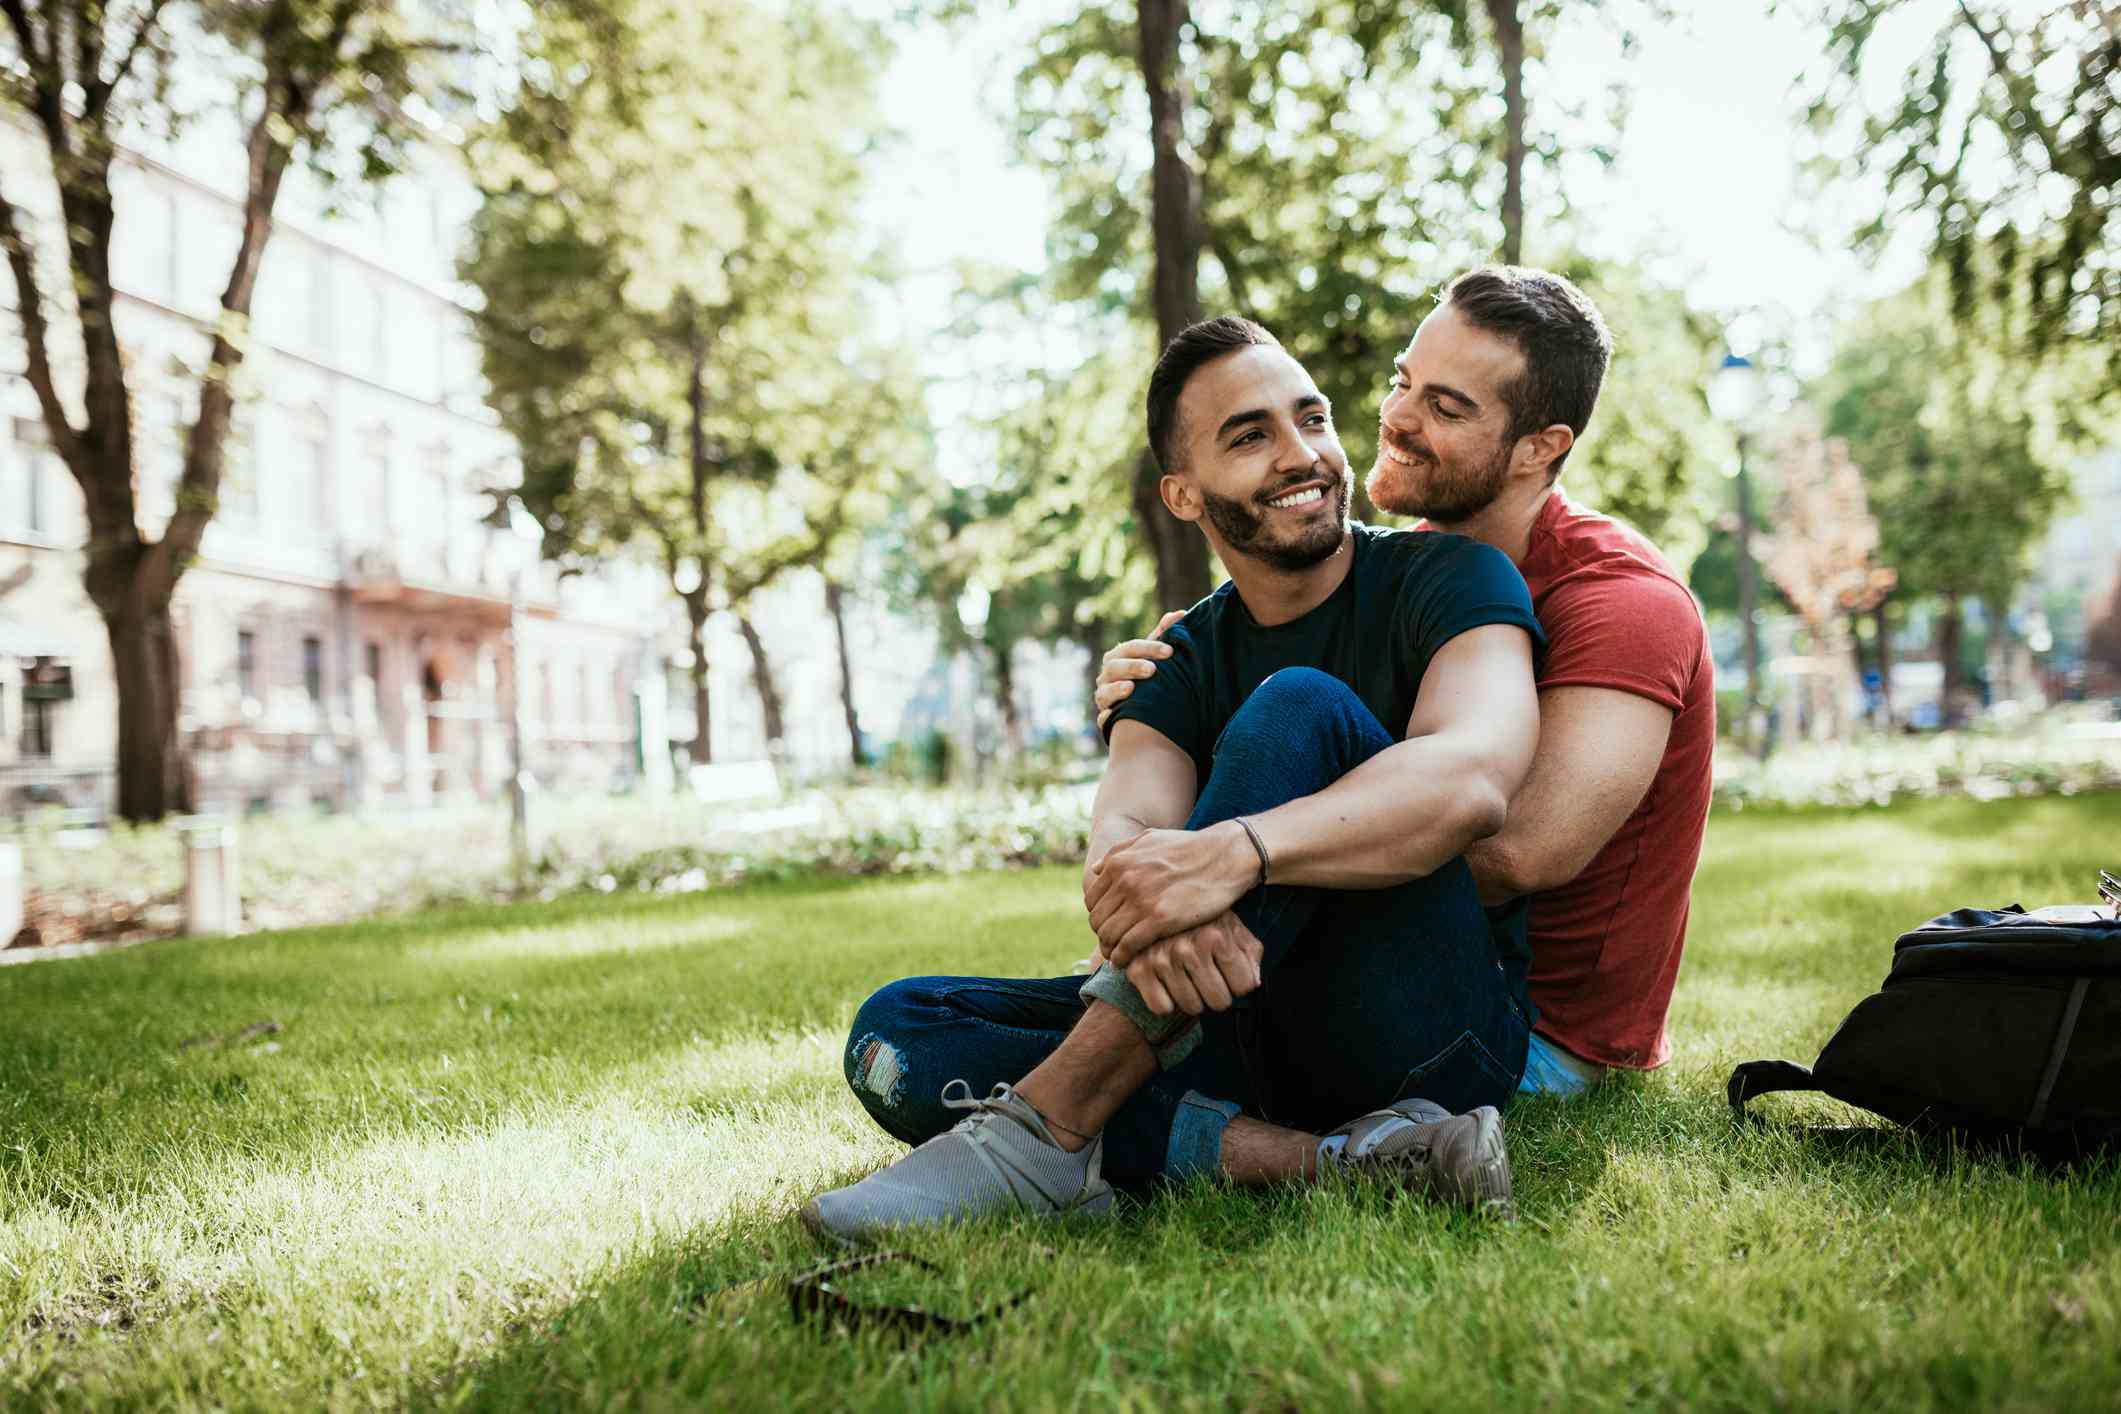 Couple holding each other in a park